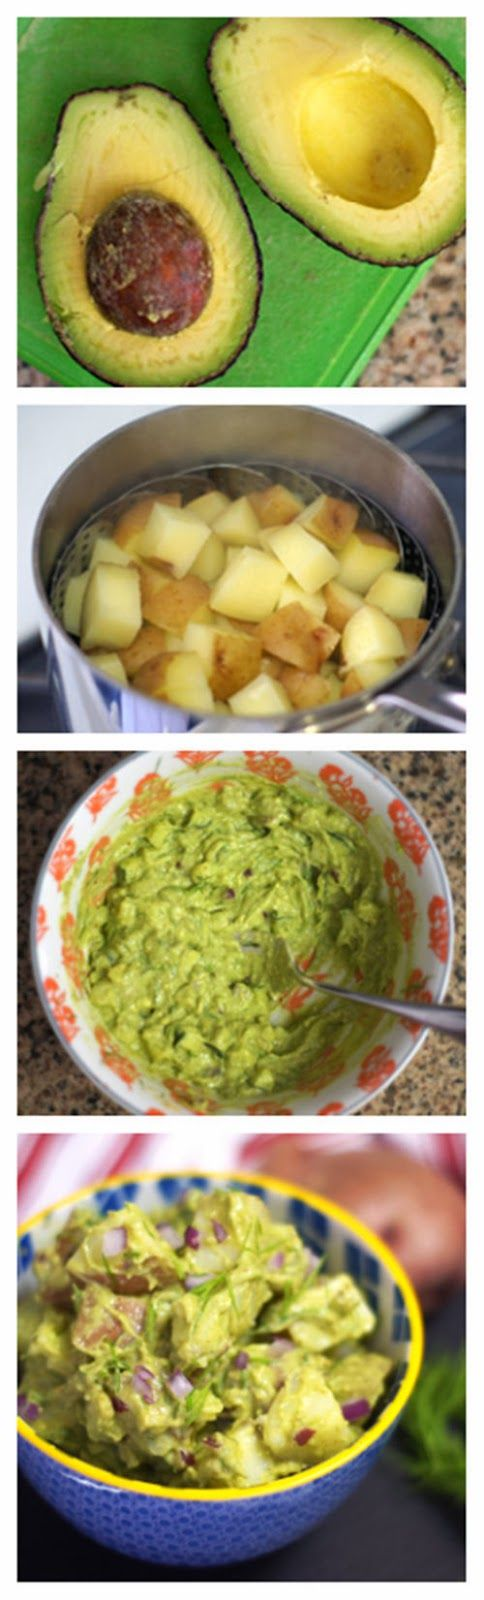 ... potato salad recipe yummly creamy fingerling potato salad vegan recipe